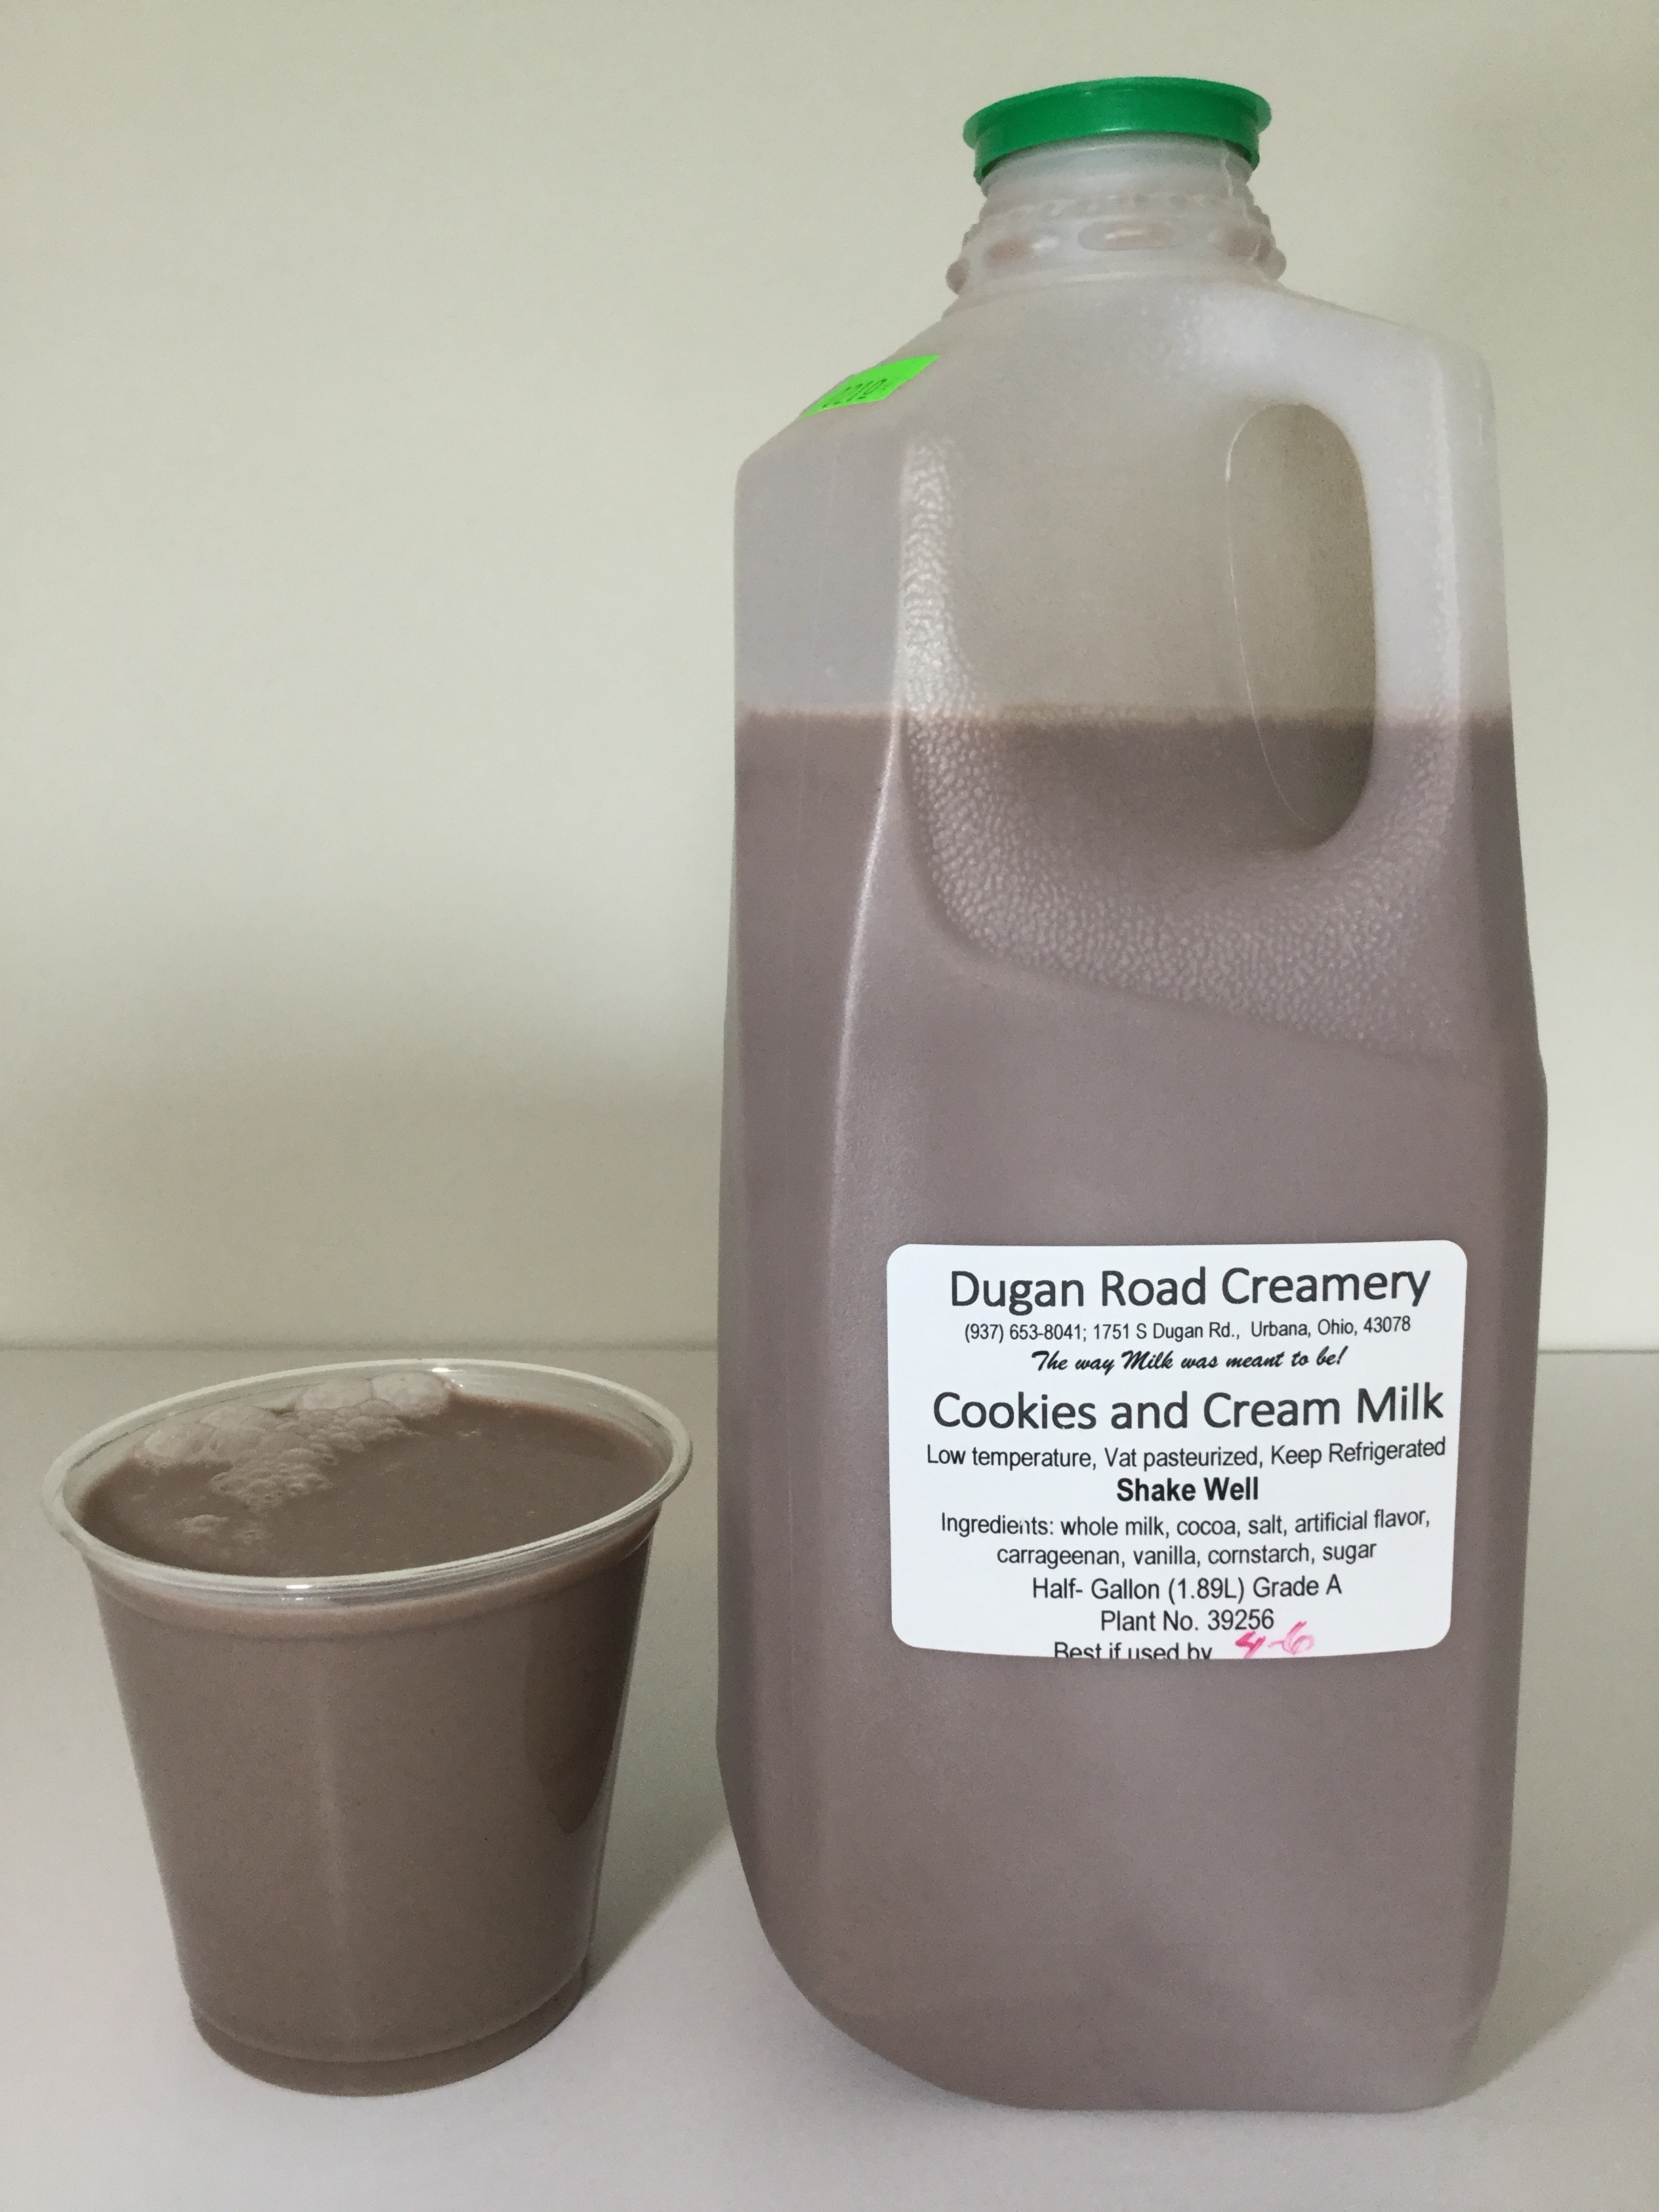 Dugan Road Creamery Cookies and Cream Milk Cup